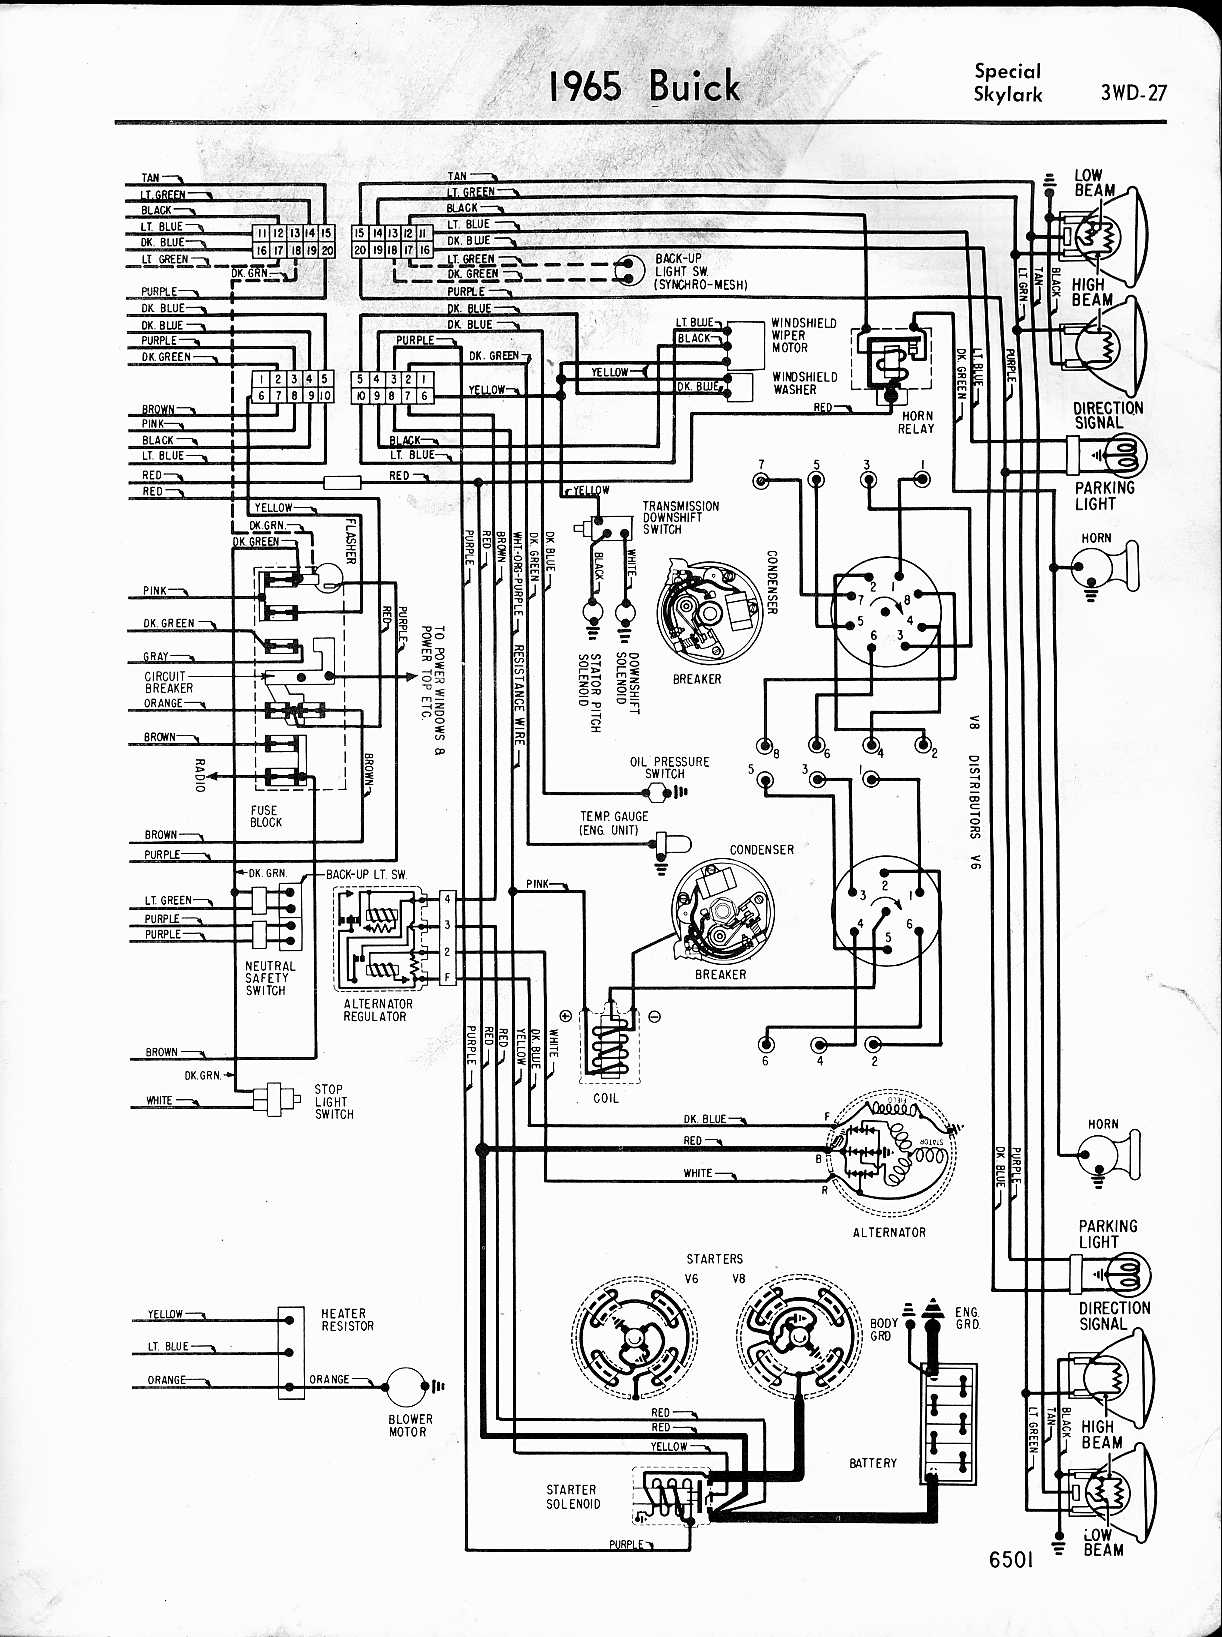 Fine Wiring Diagram 1966 Buick Wildcat And Electra Wiring Diagram Wiring Digital Resources Indicompassionincorg